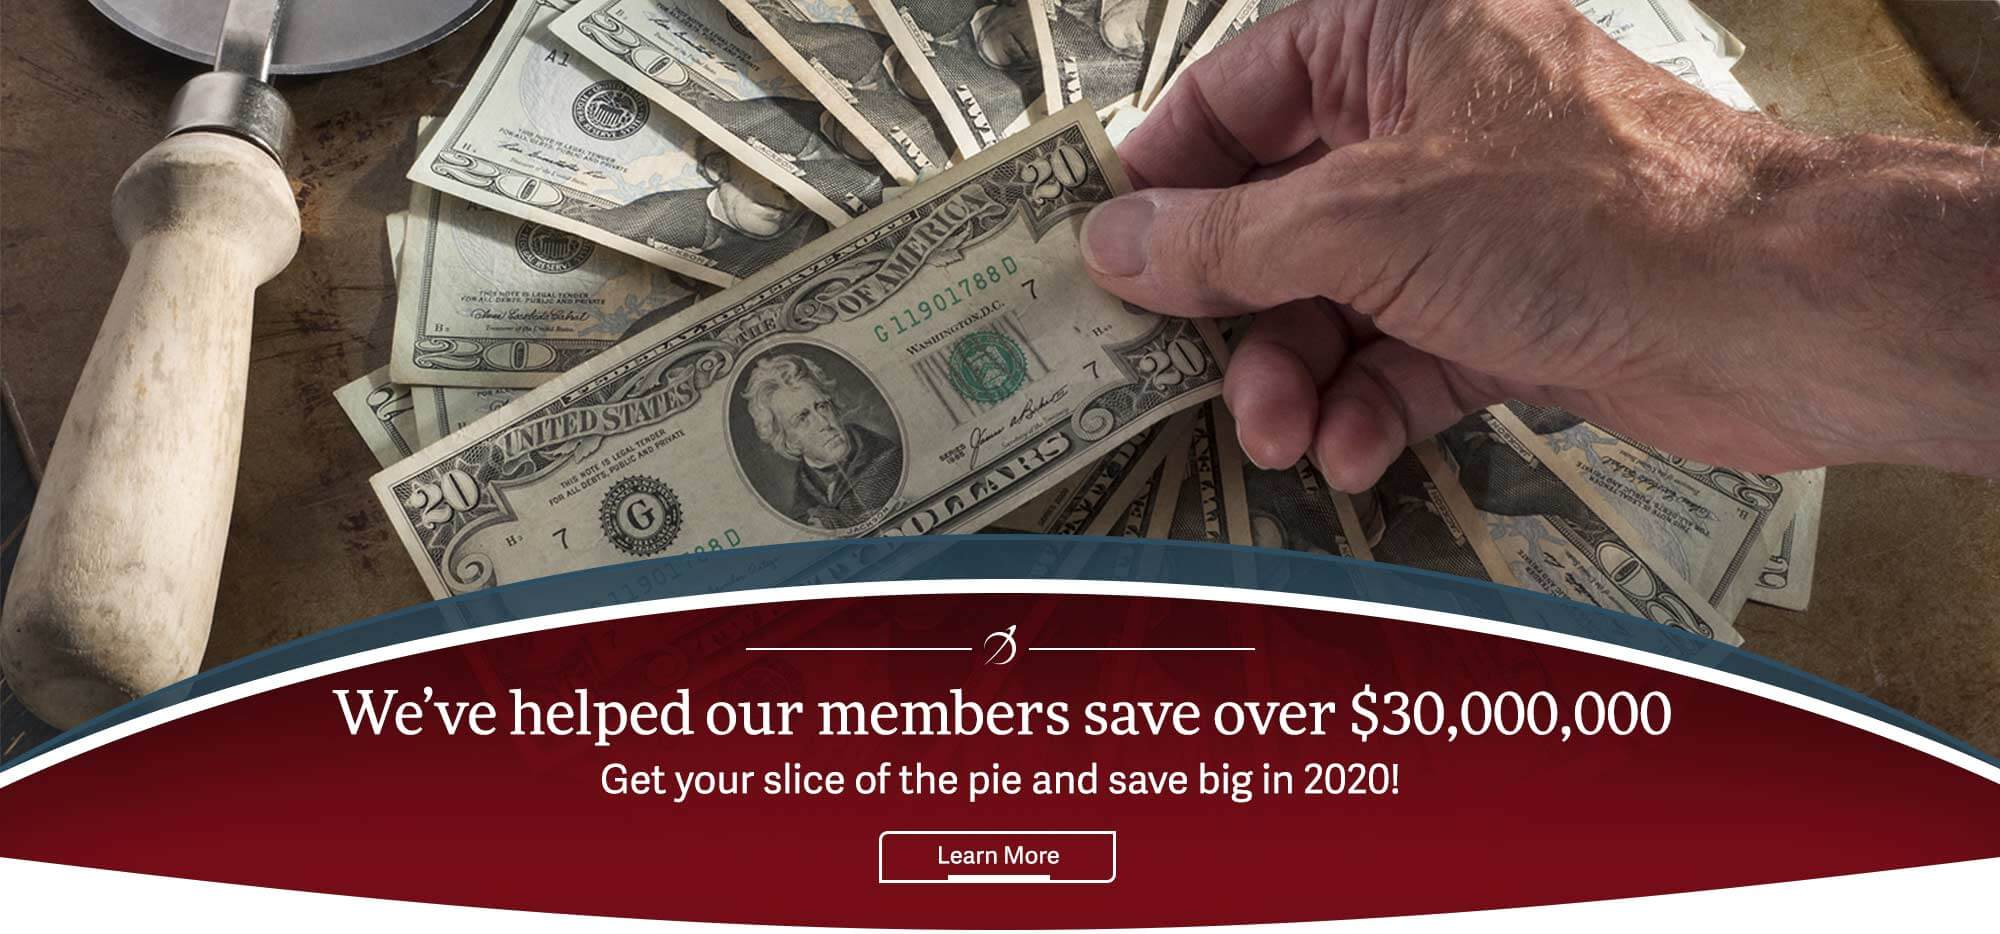 We've helped our members save over $30,000,000 Get your slice of the pie and save big in 2020! Learn More